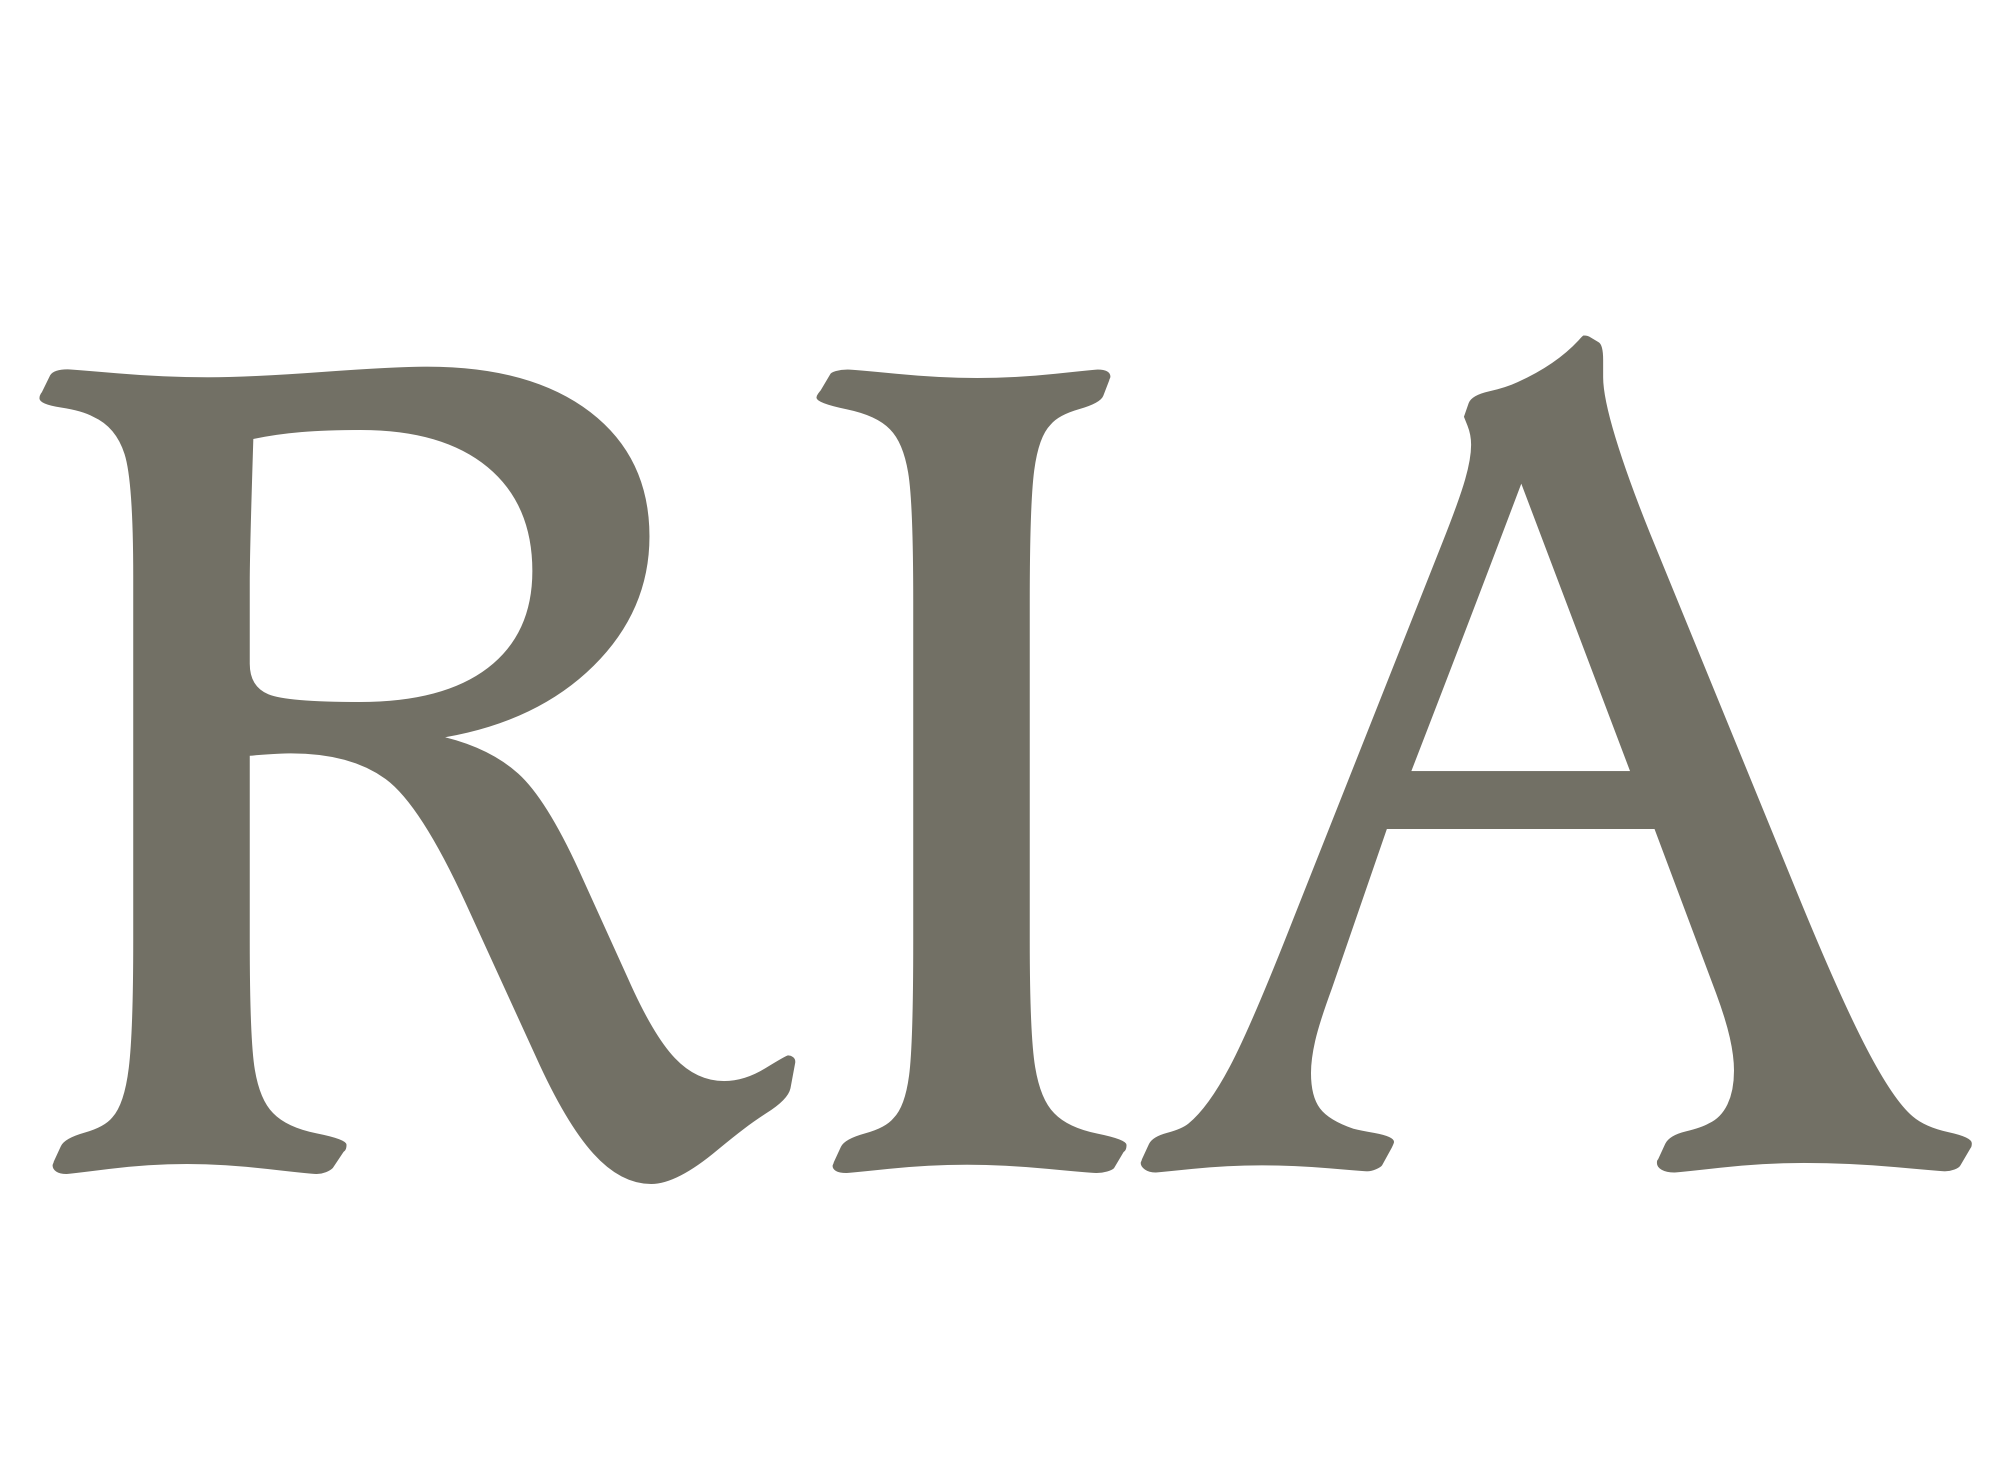 Ria - Name's Meaning of Ria